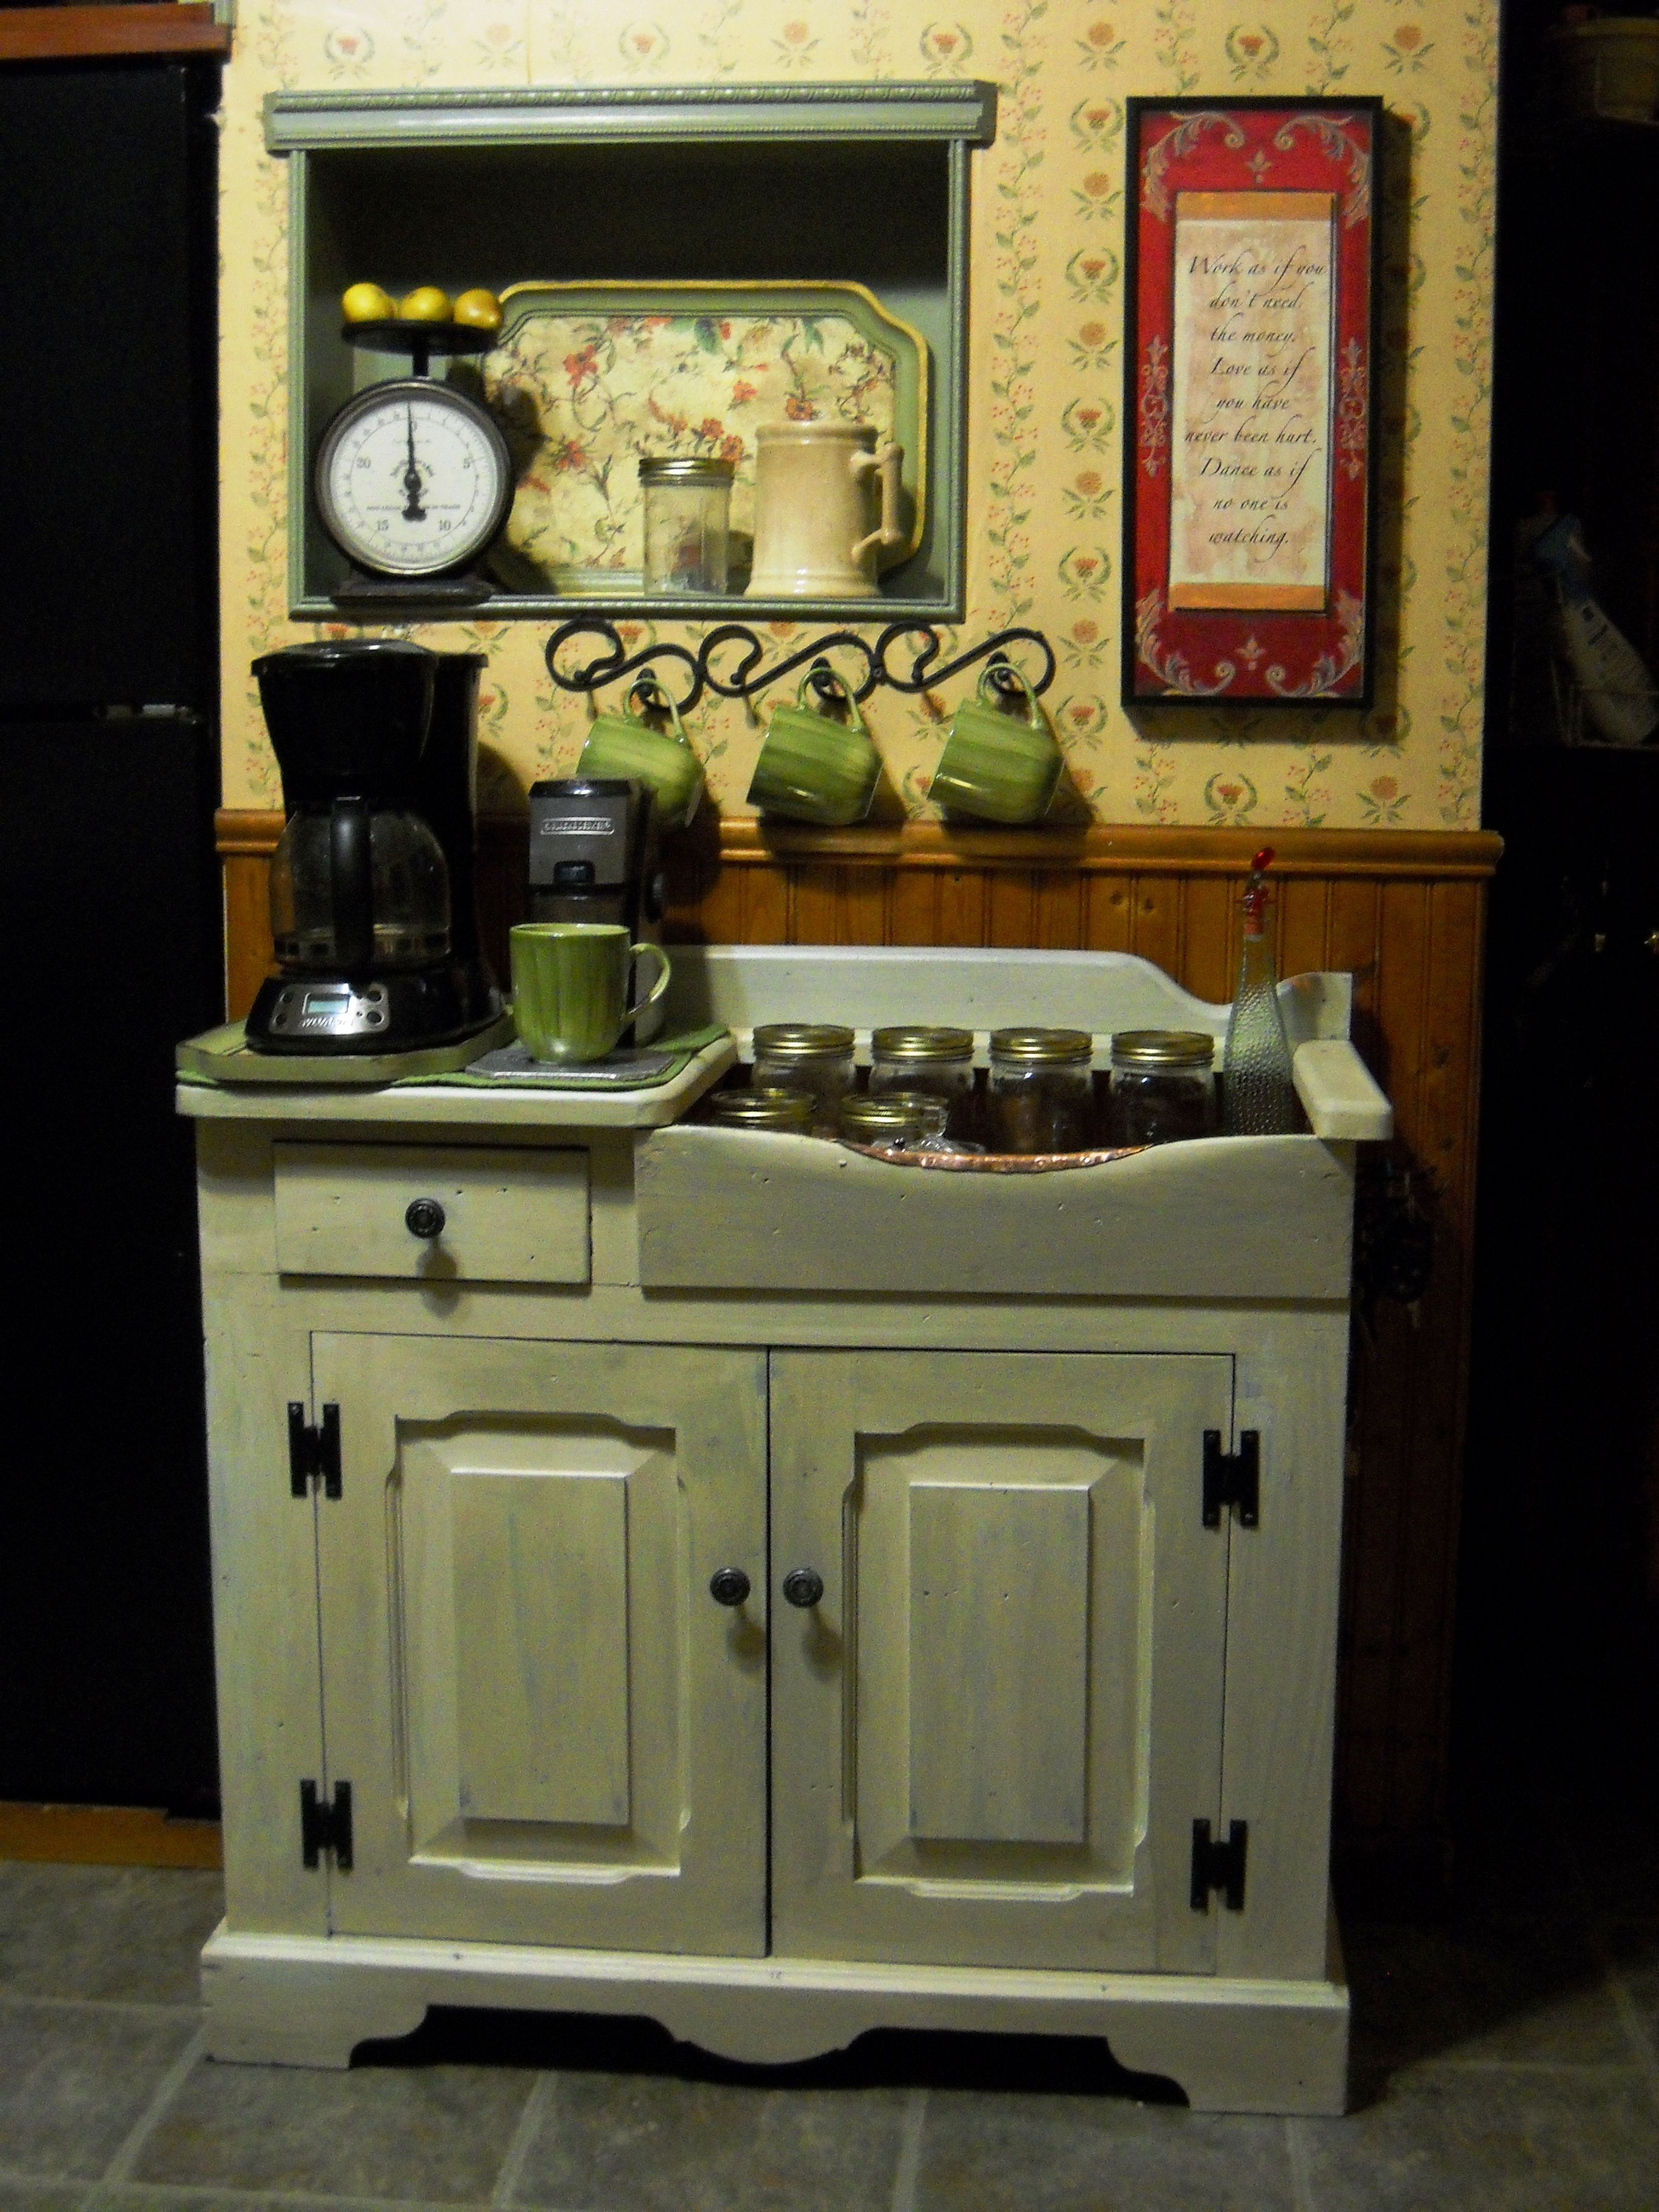 refinish kitchen sink Dry Sink Makeover and Decorating Ideas This is an old dry sink that we refinished